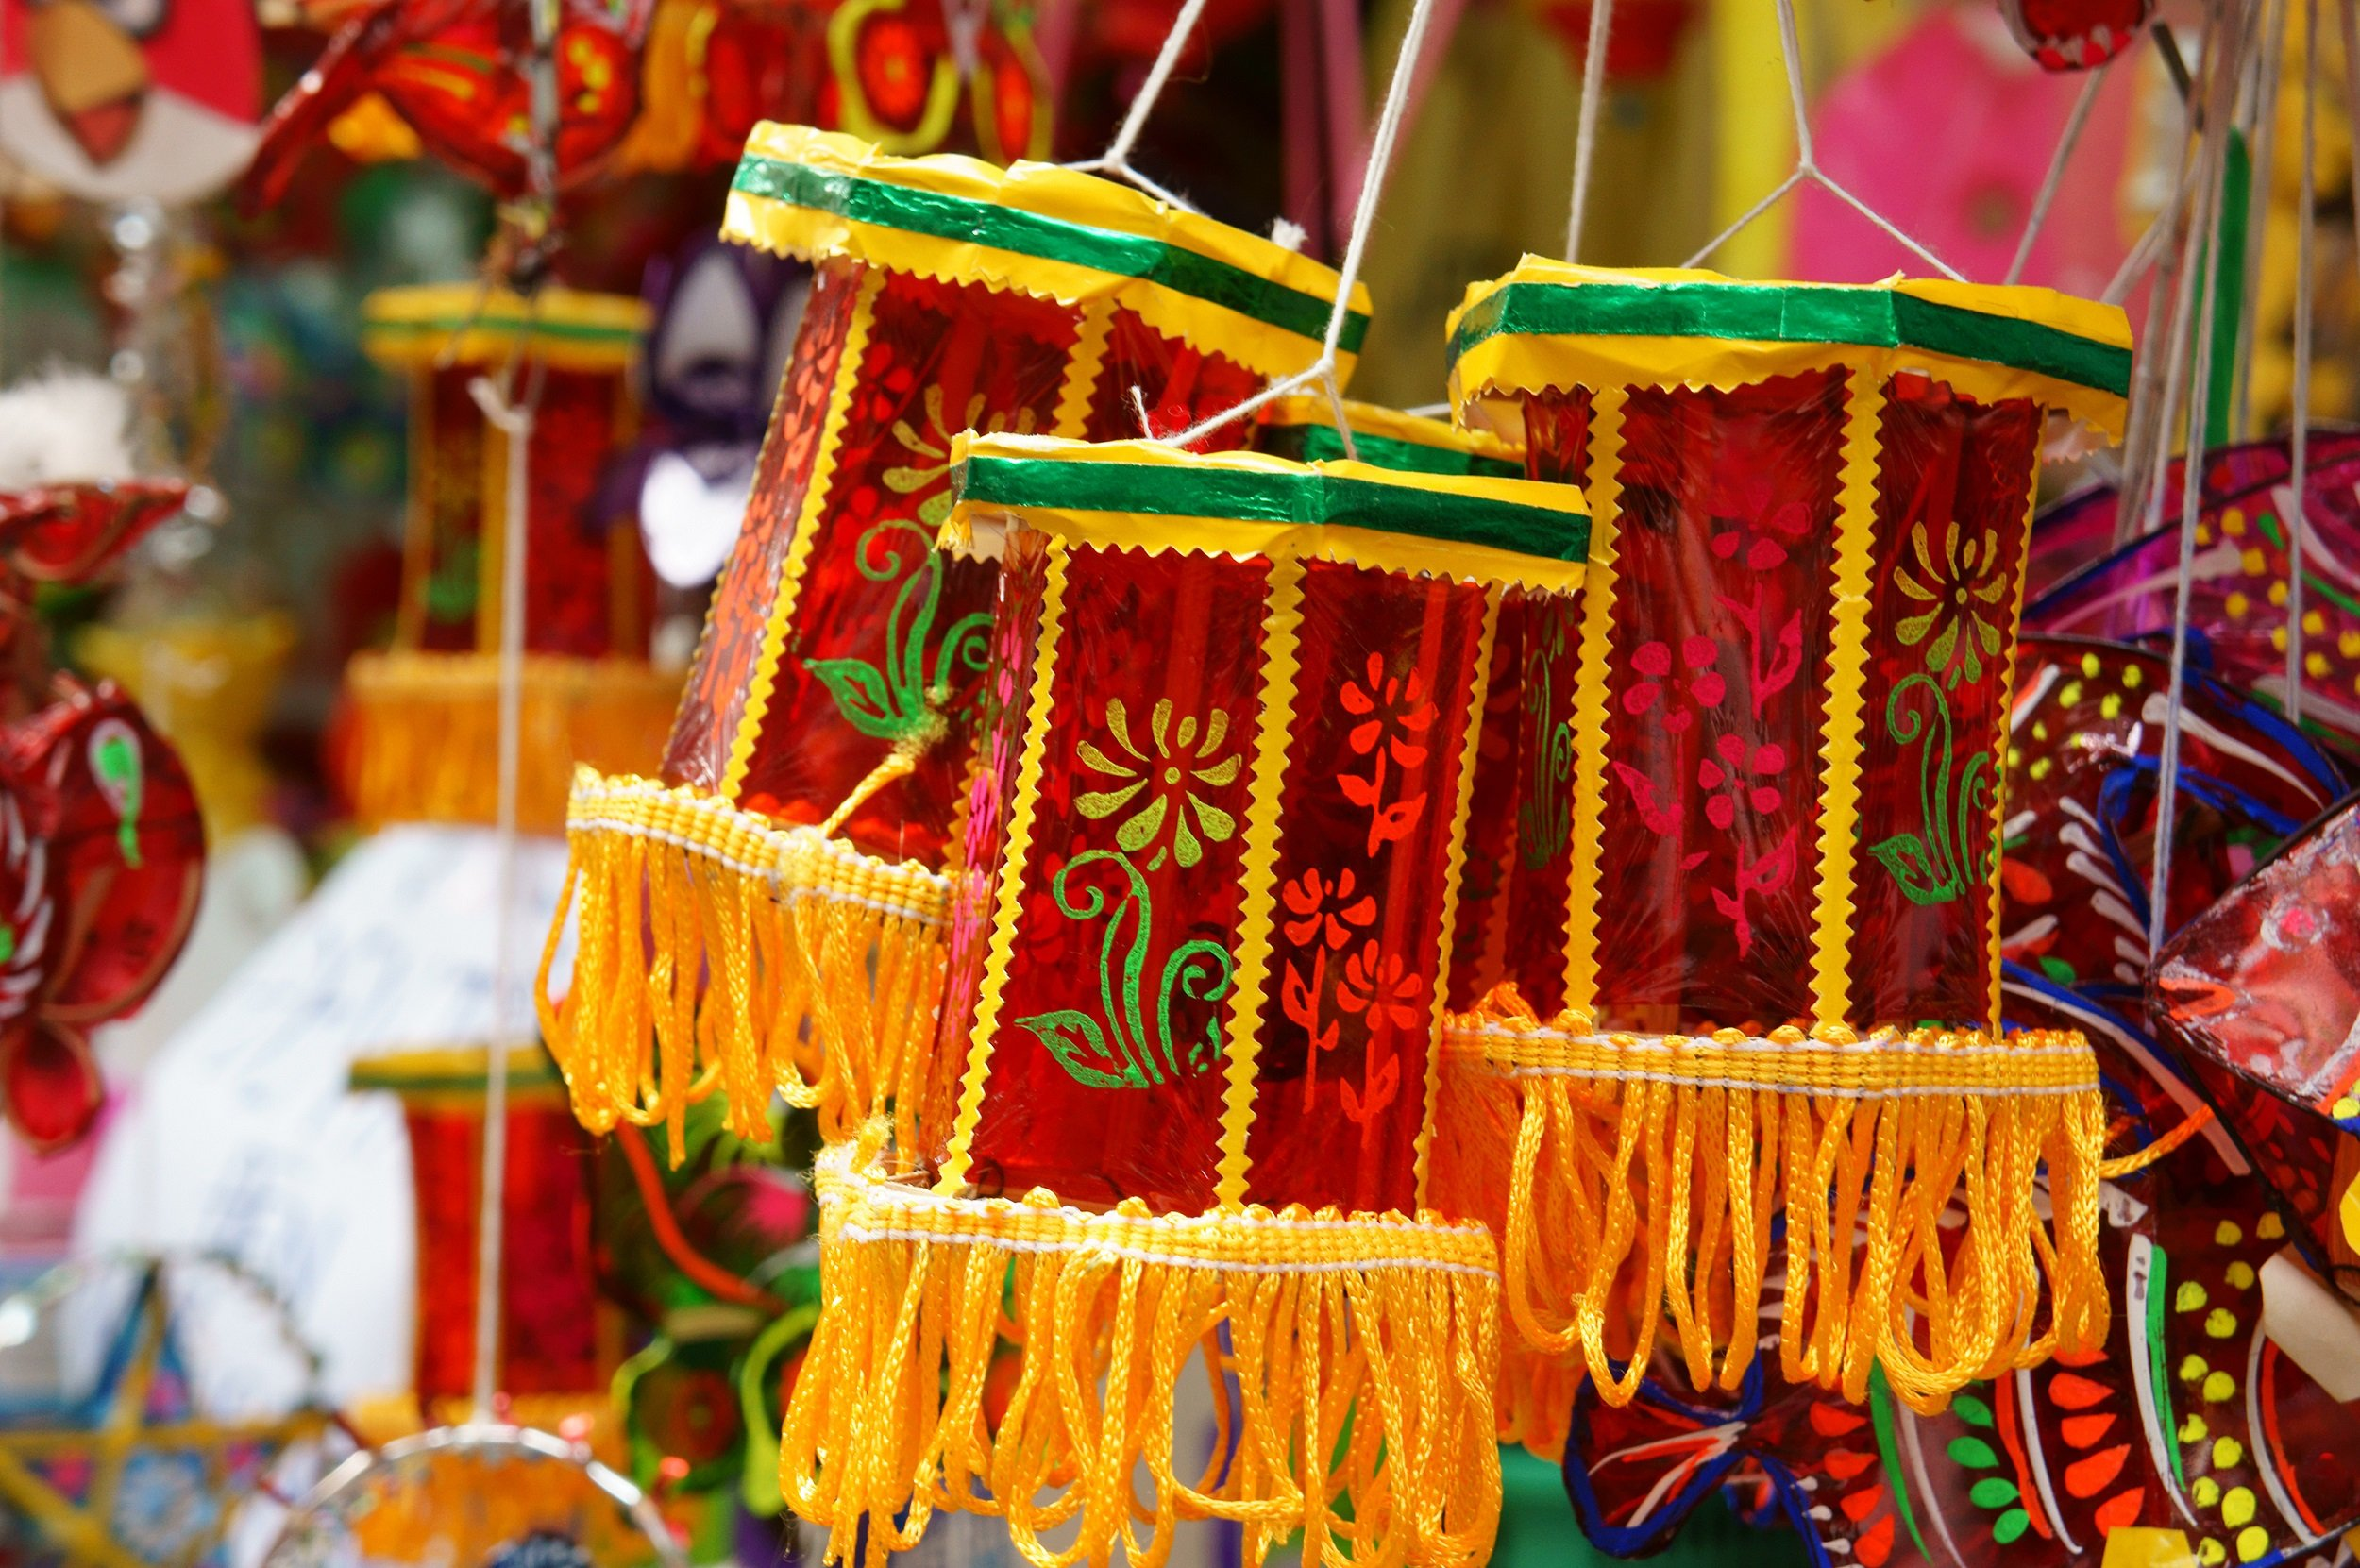 Discover The Colorful Markets Of Ho Chi Minh On The Ho Chi Minh Half Day City Tour